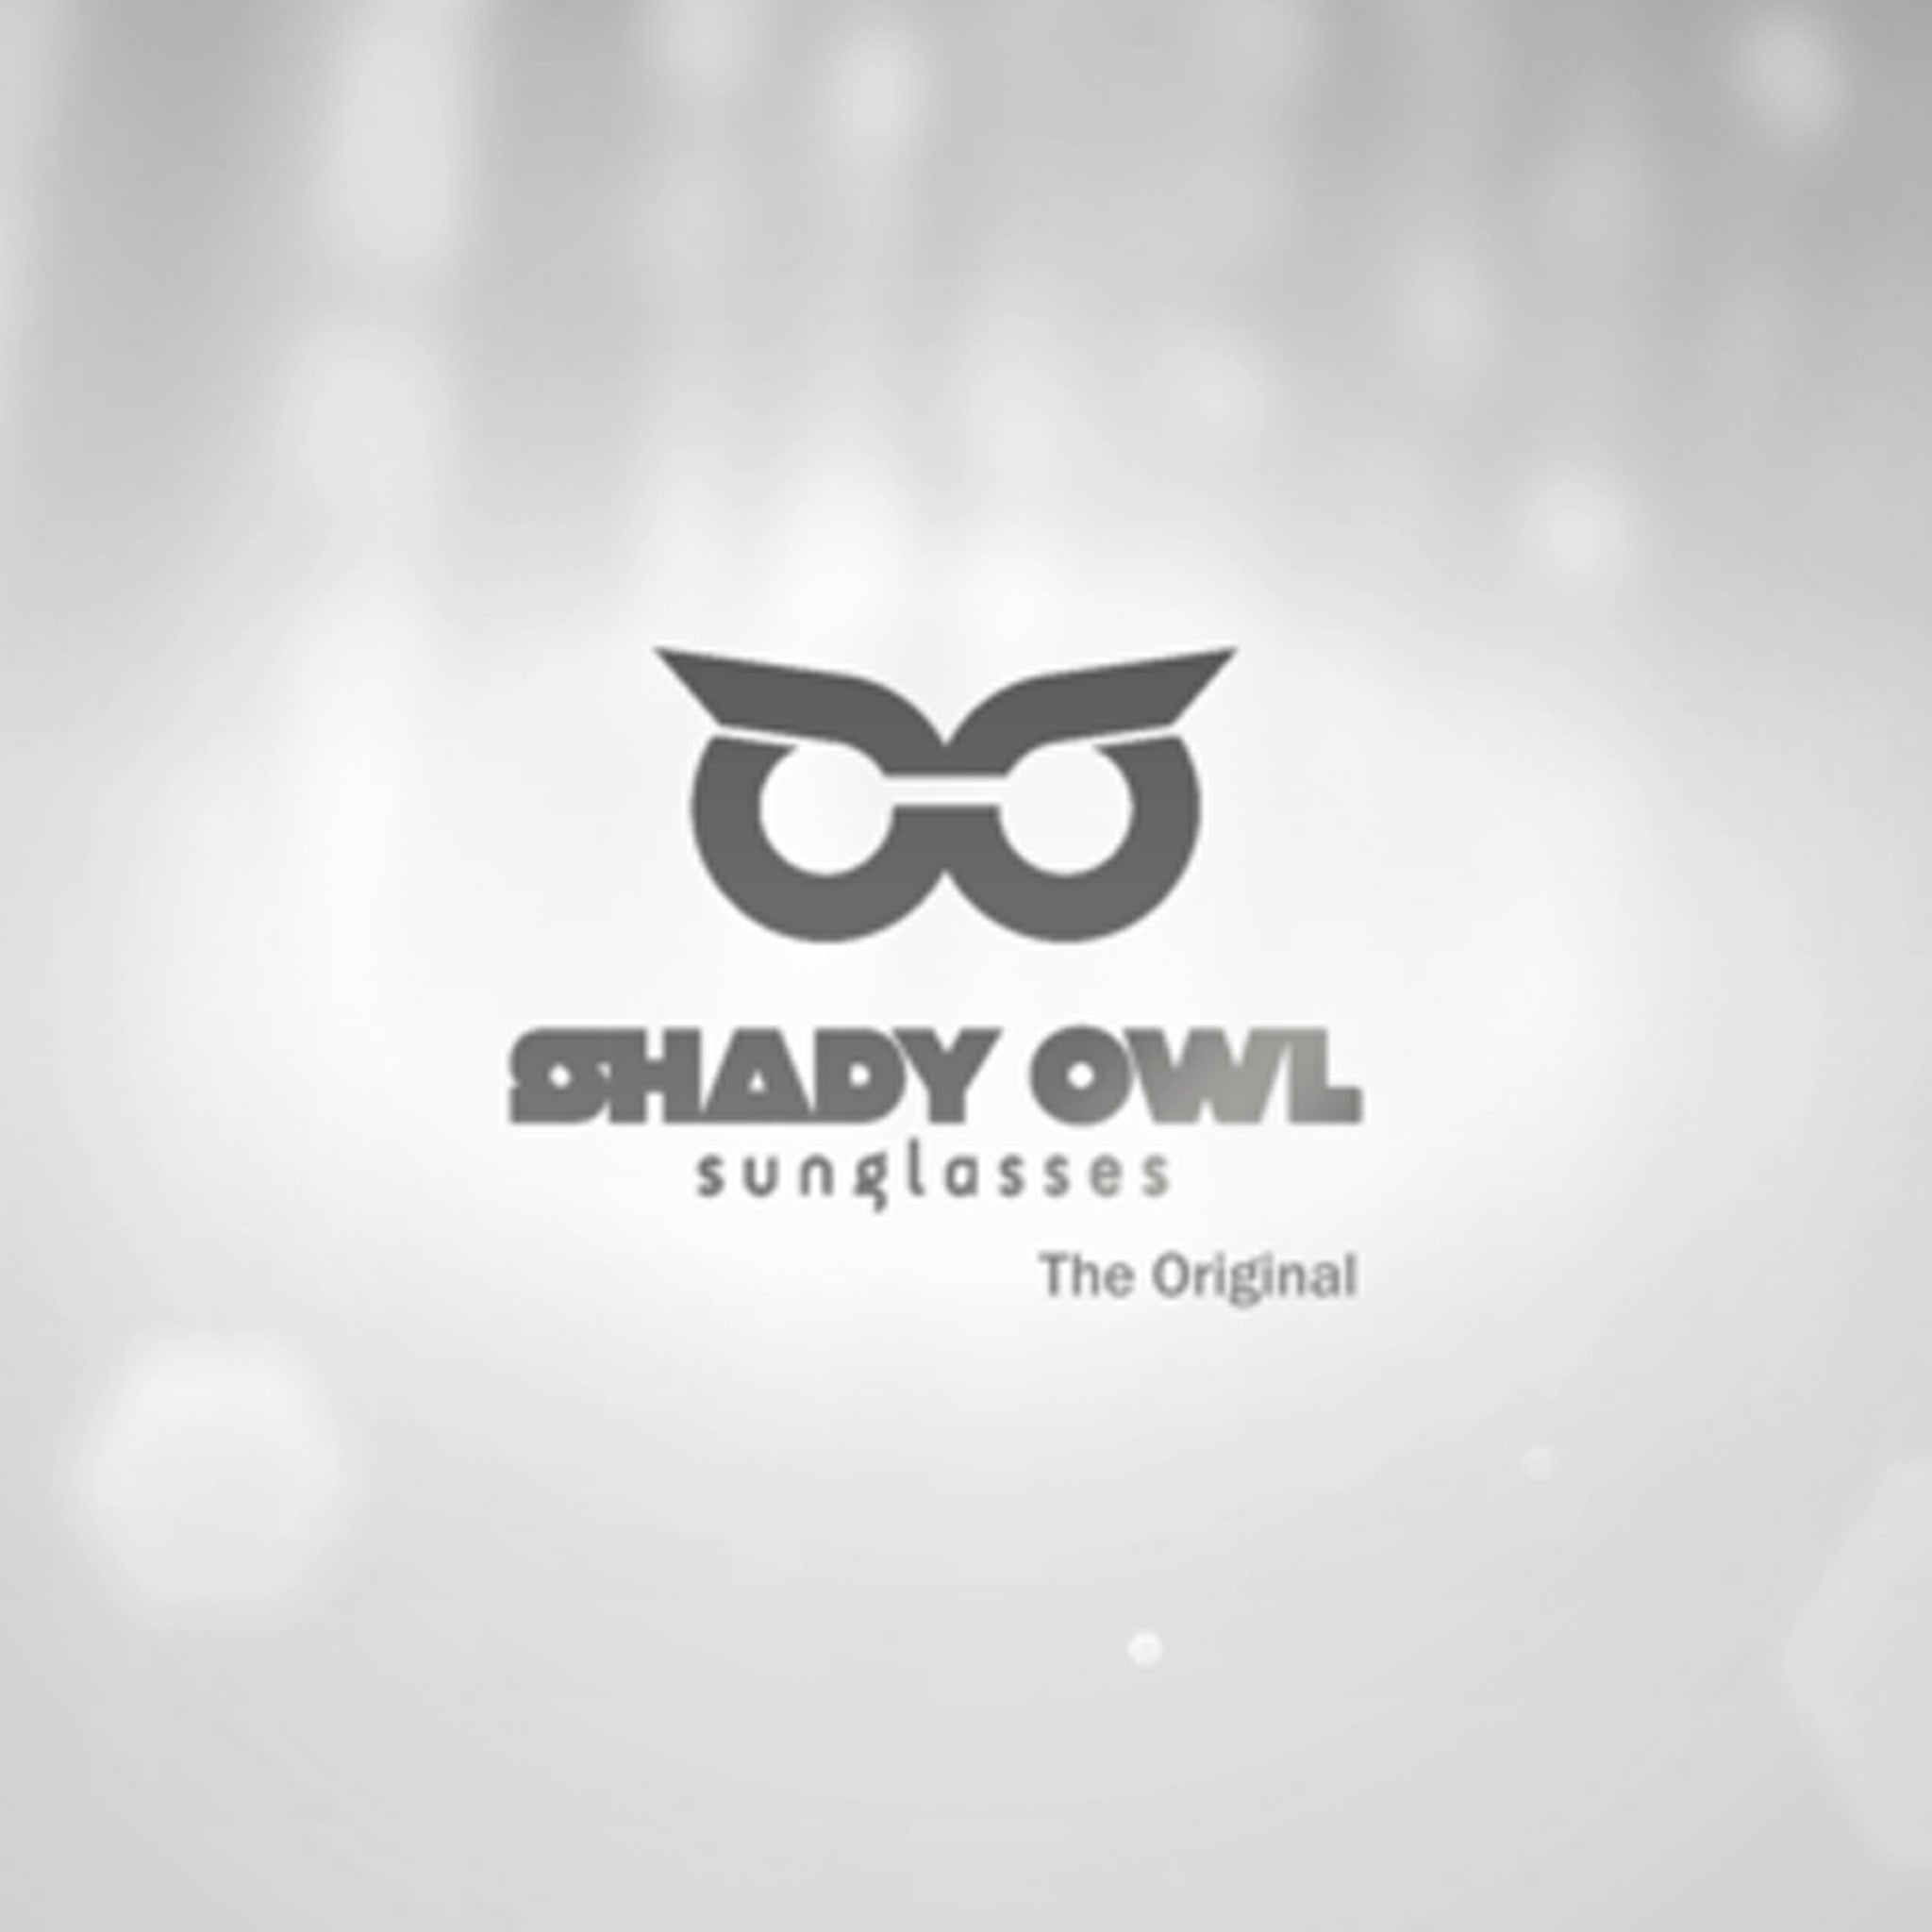 "Shady Owl Sunglasses Launches ""The Original"" Campaign"